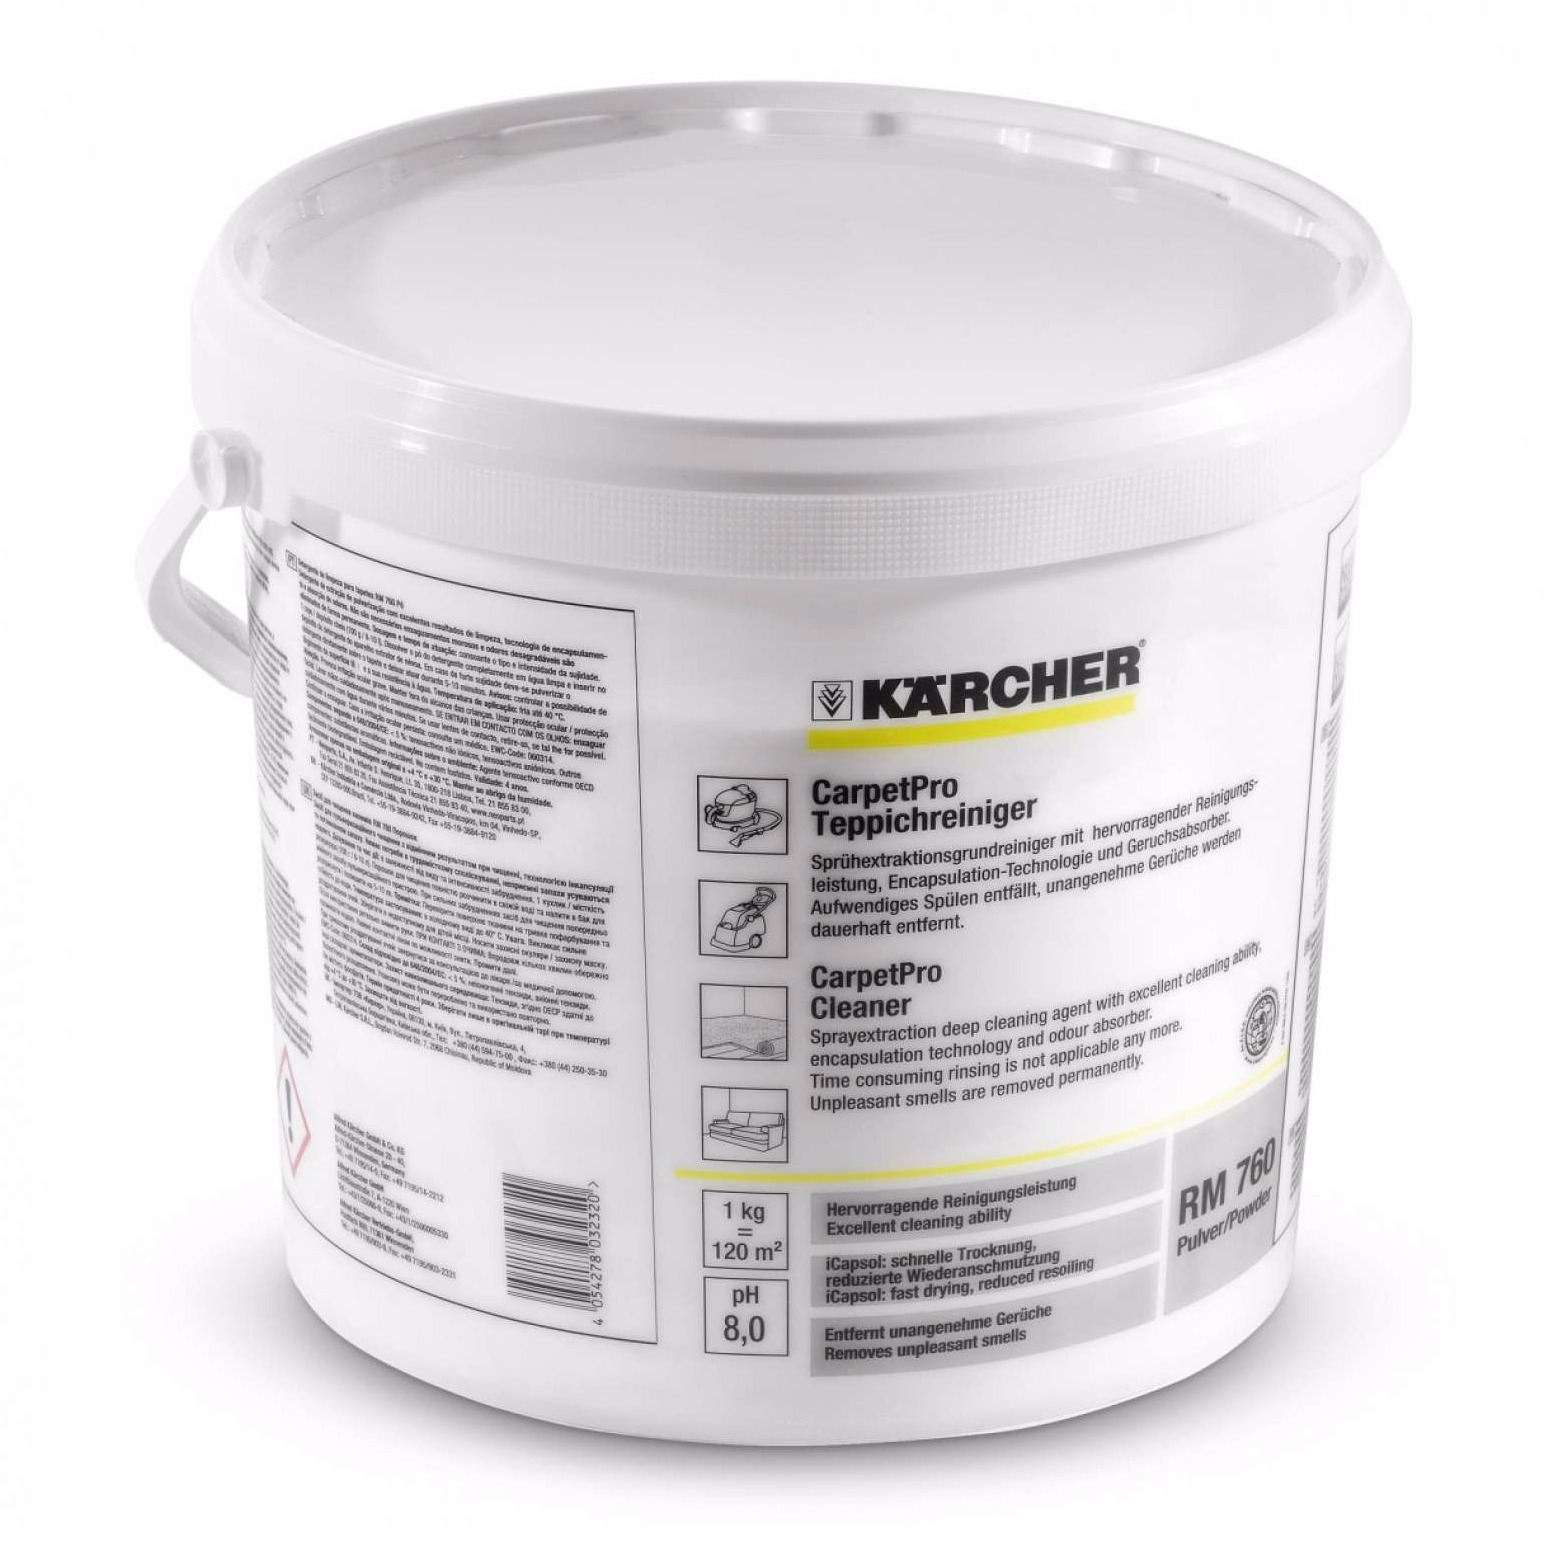 CarpetPro Cleaner RM 760 Powder, 10 kg